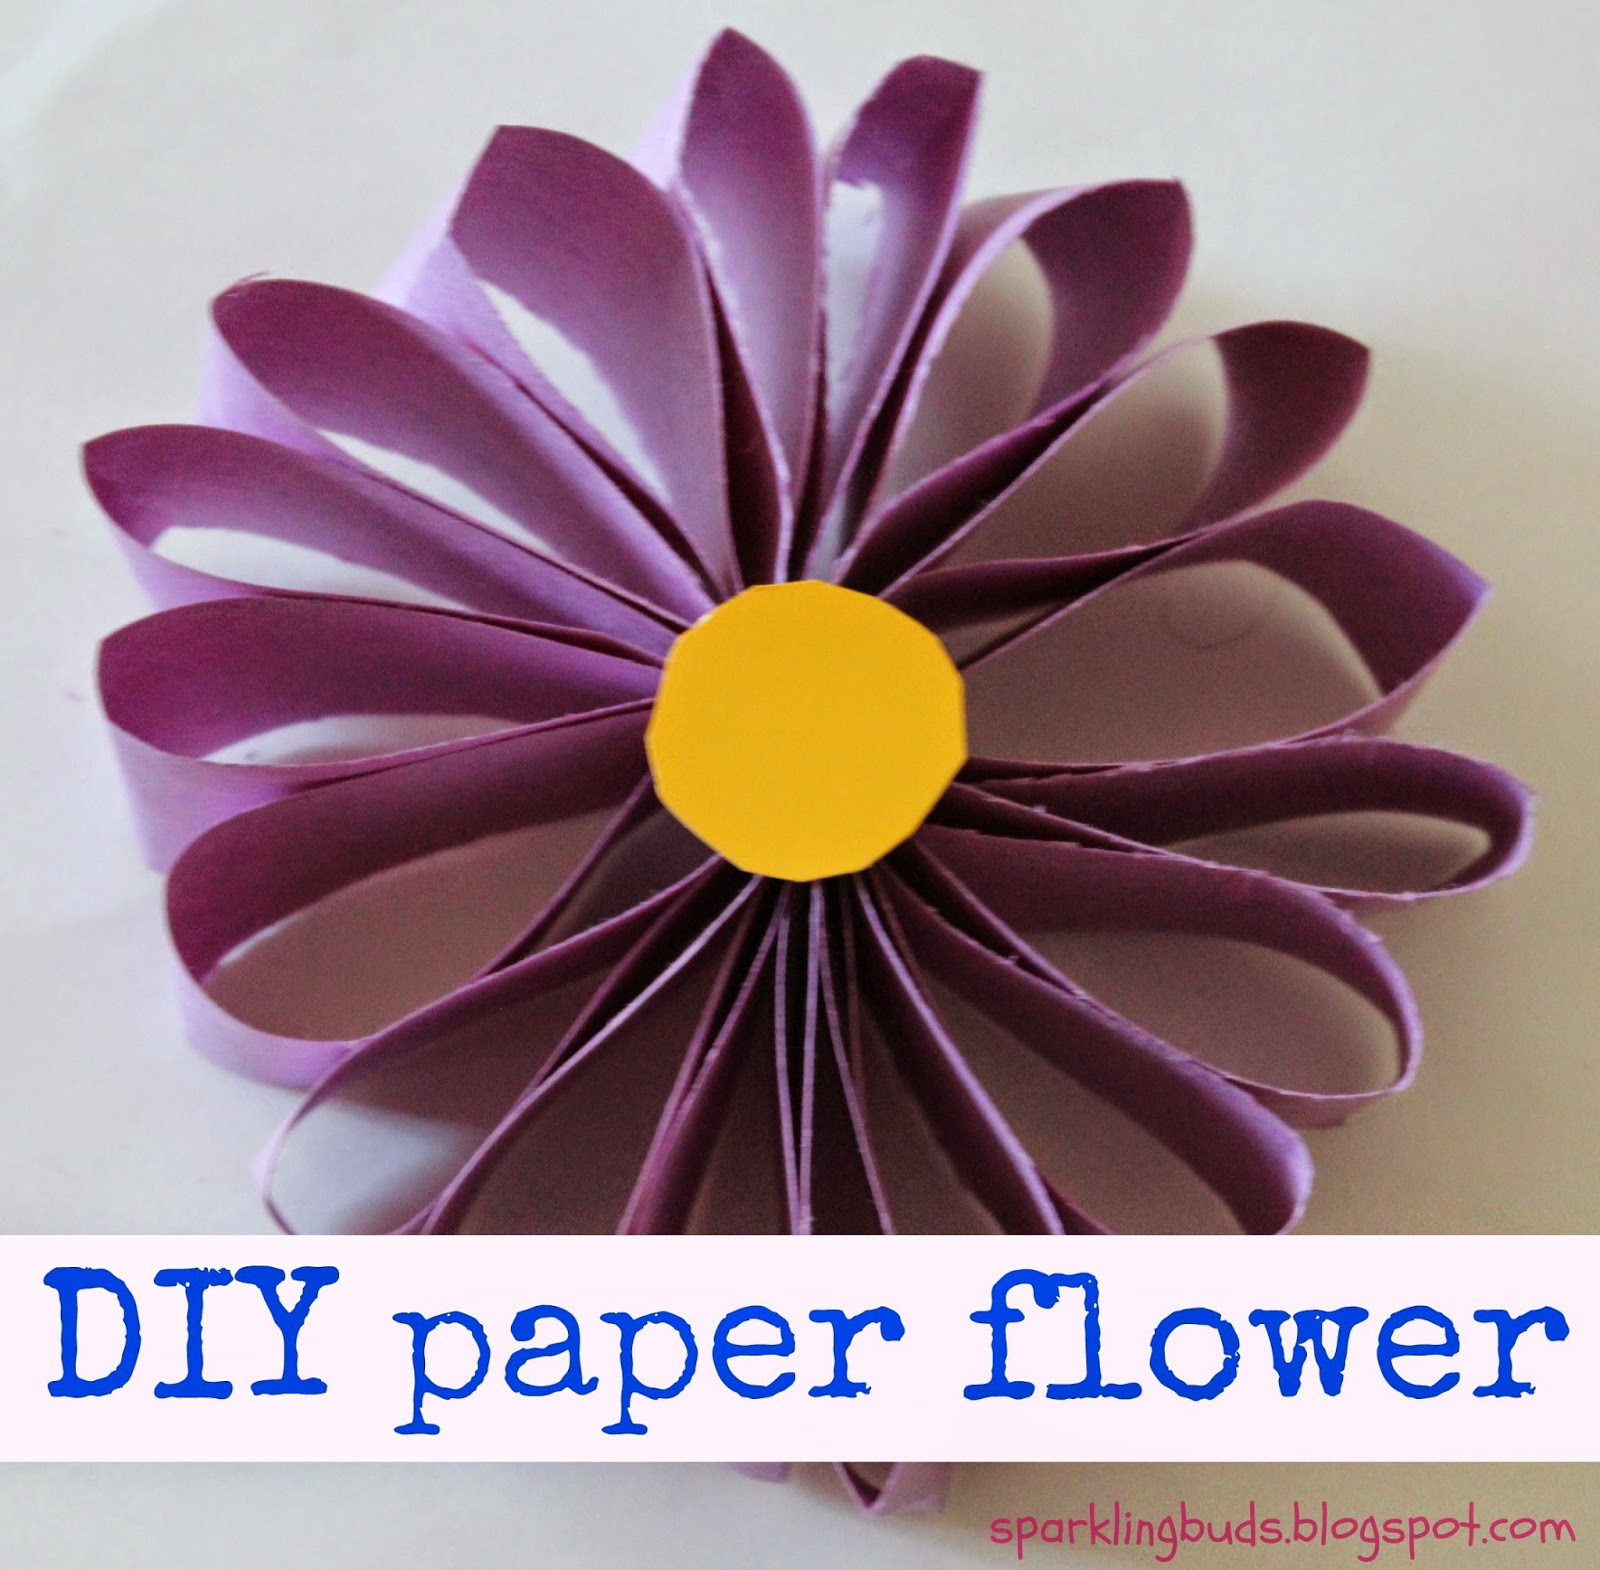 Paper flower craft easy ukrandiffusion easy paper flower sparklingbuds mightylinksfo